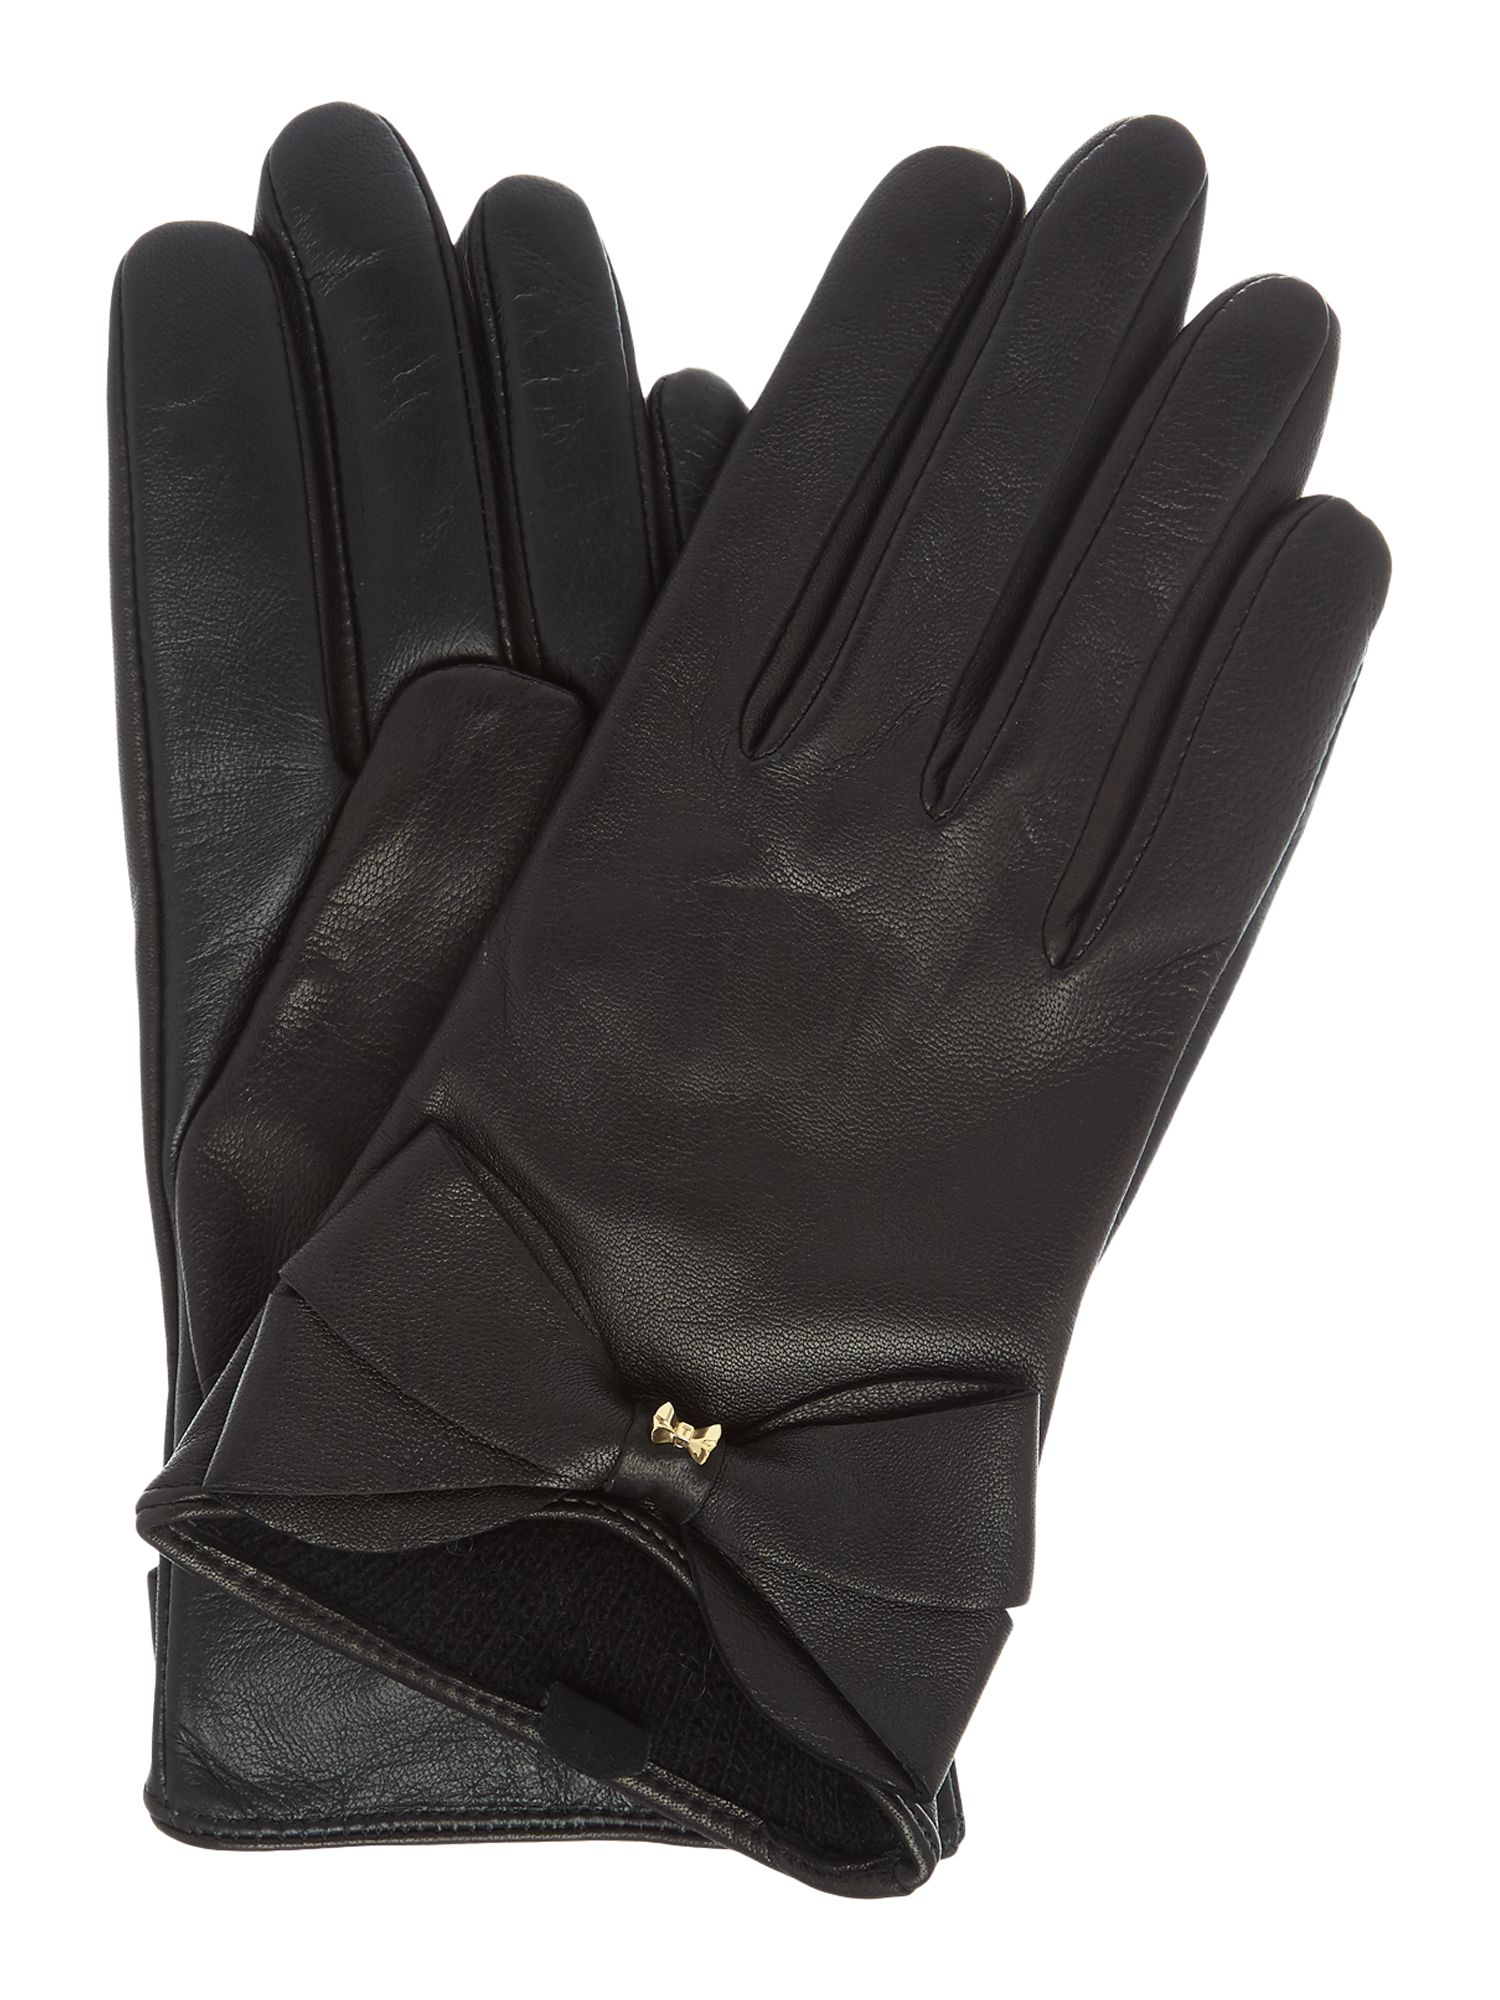 Ladies leather gloves blue - Vintage Style Gloves Ted Baker Lynna Large Bow Leather Glove 75 00 At Vintagedancer Com